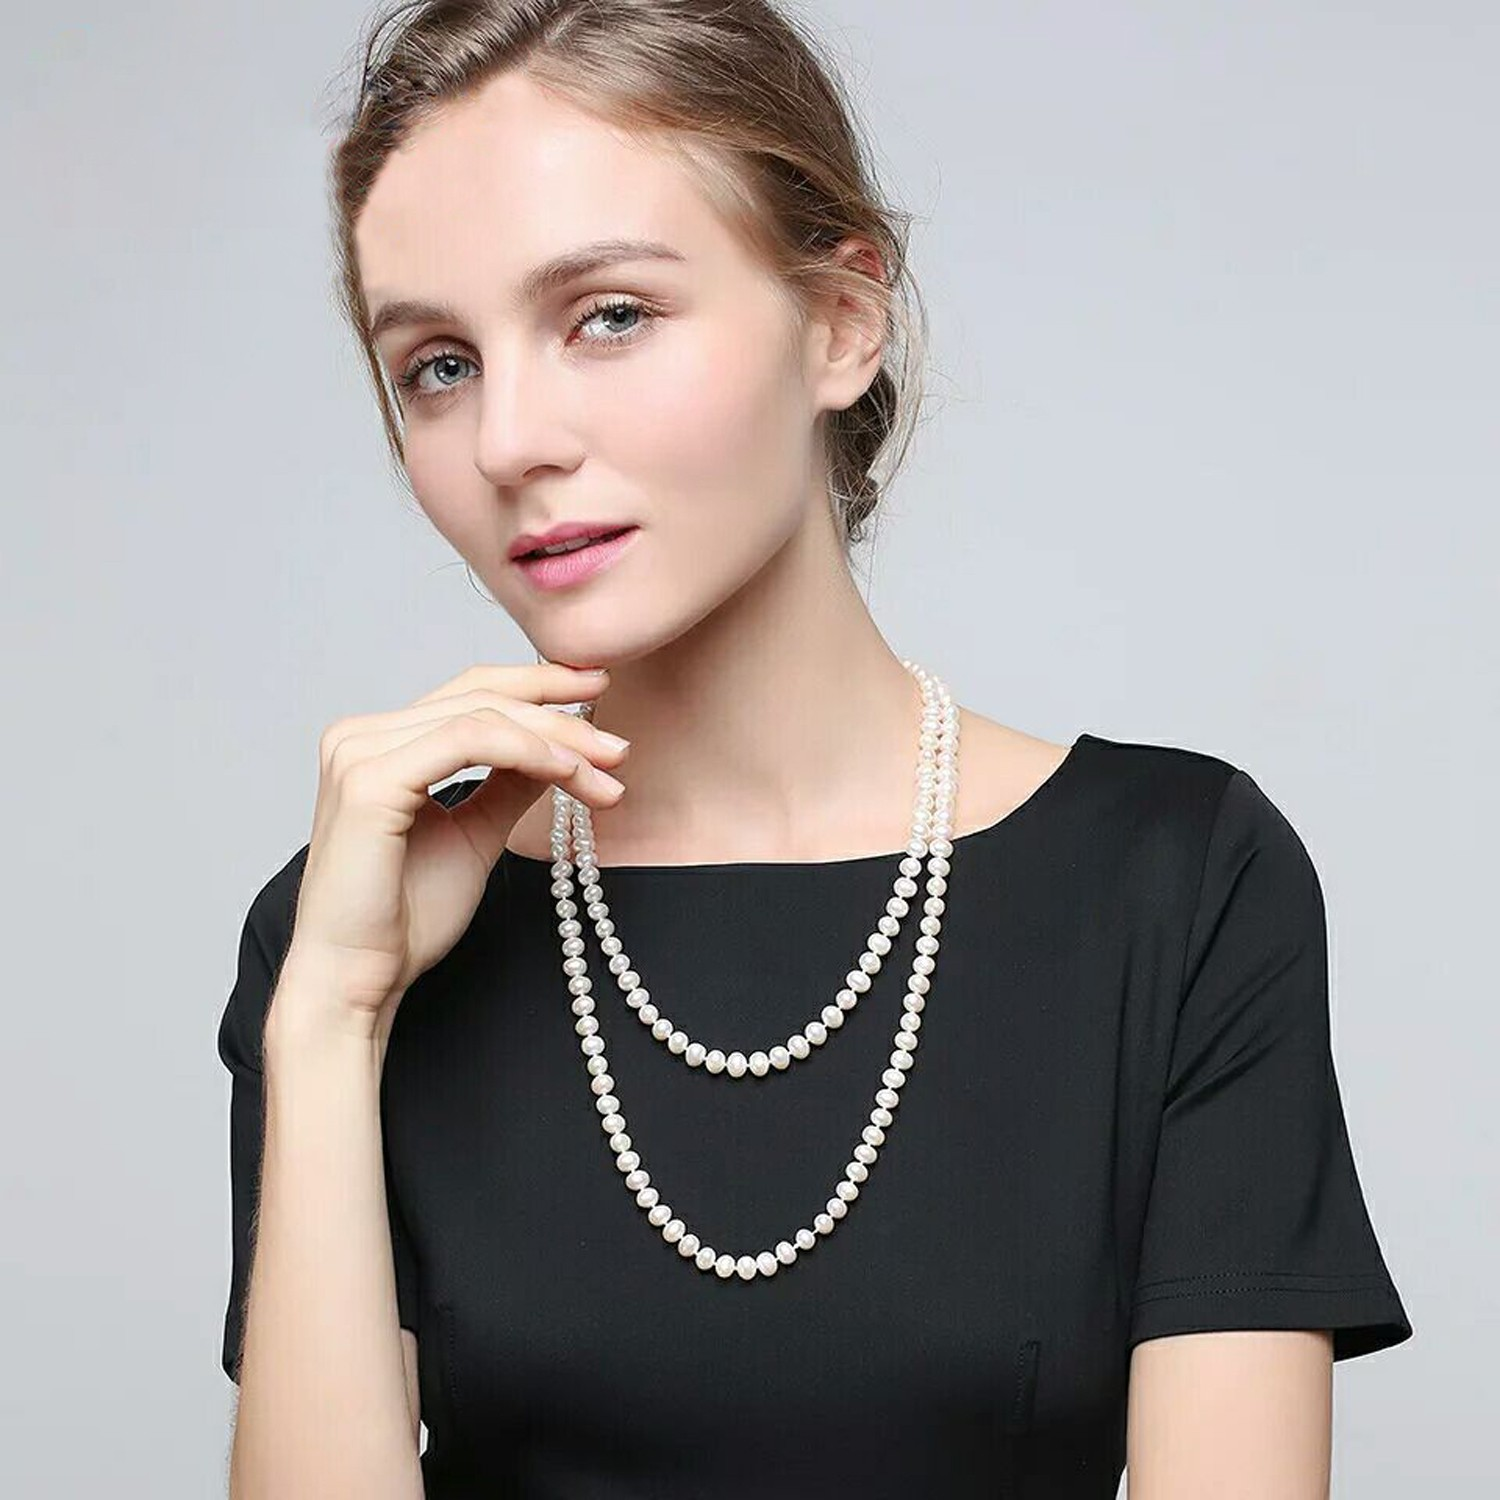 fbc3bcdf3b2de Aobei Pearl Handmade Necklace with Freshwater Pearl and Cotton ...